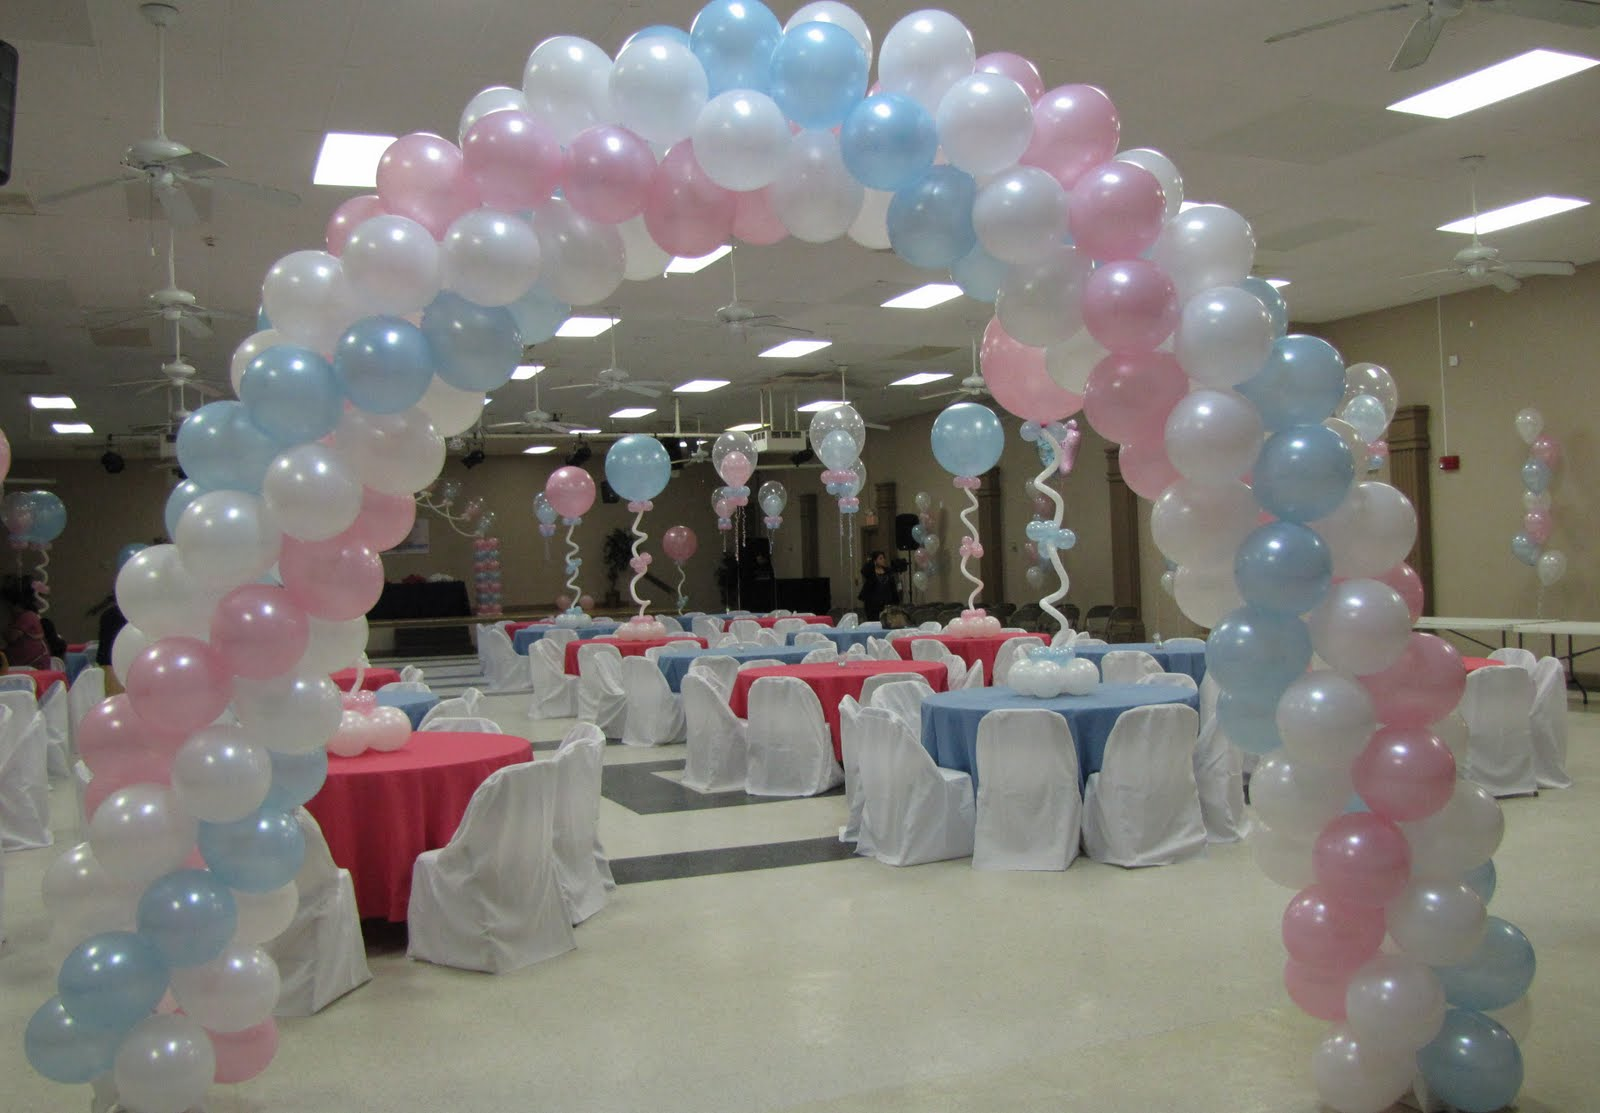 Balloons decorations for baby shower party favors ideas for Baby shower ceiling decoration ideas